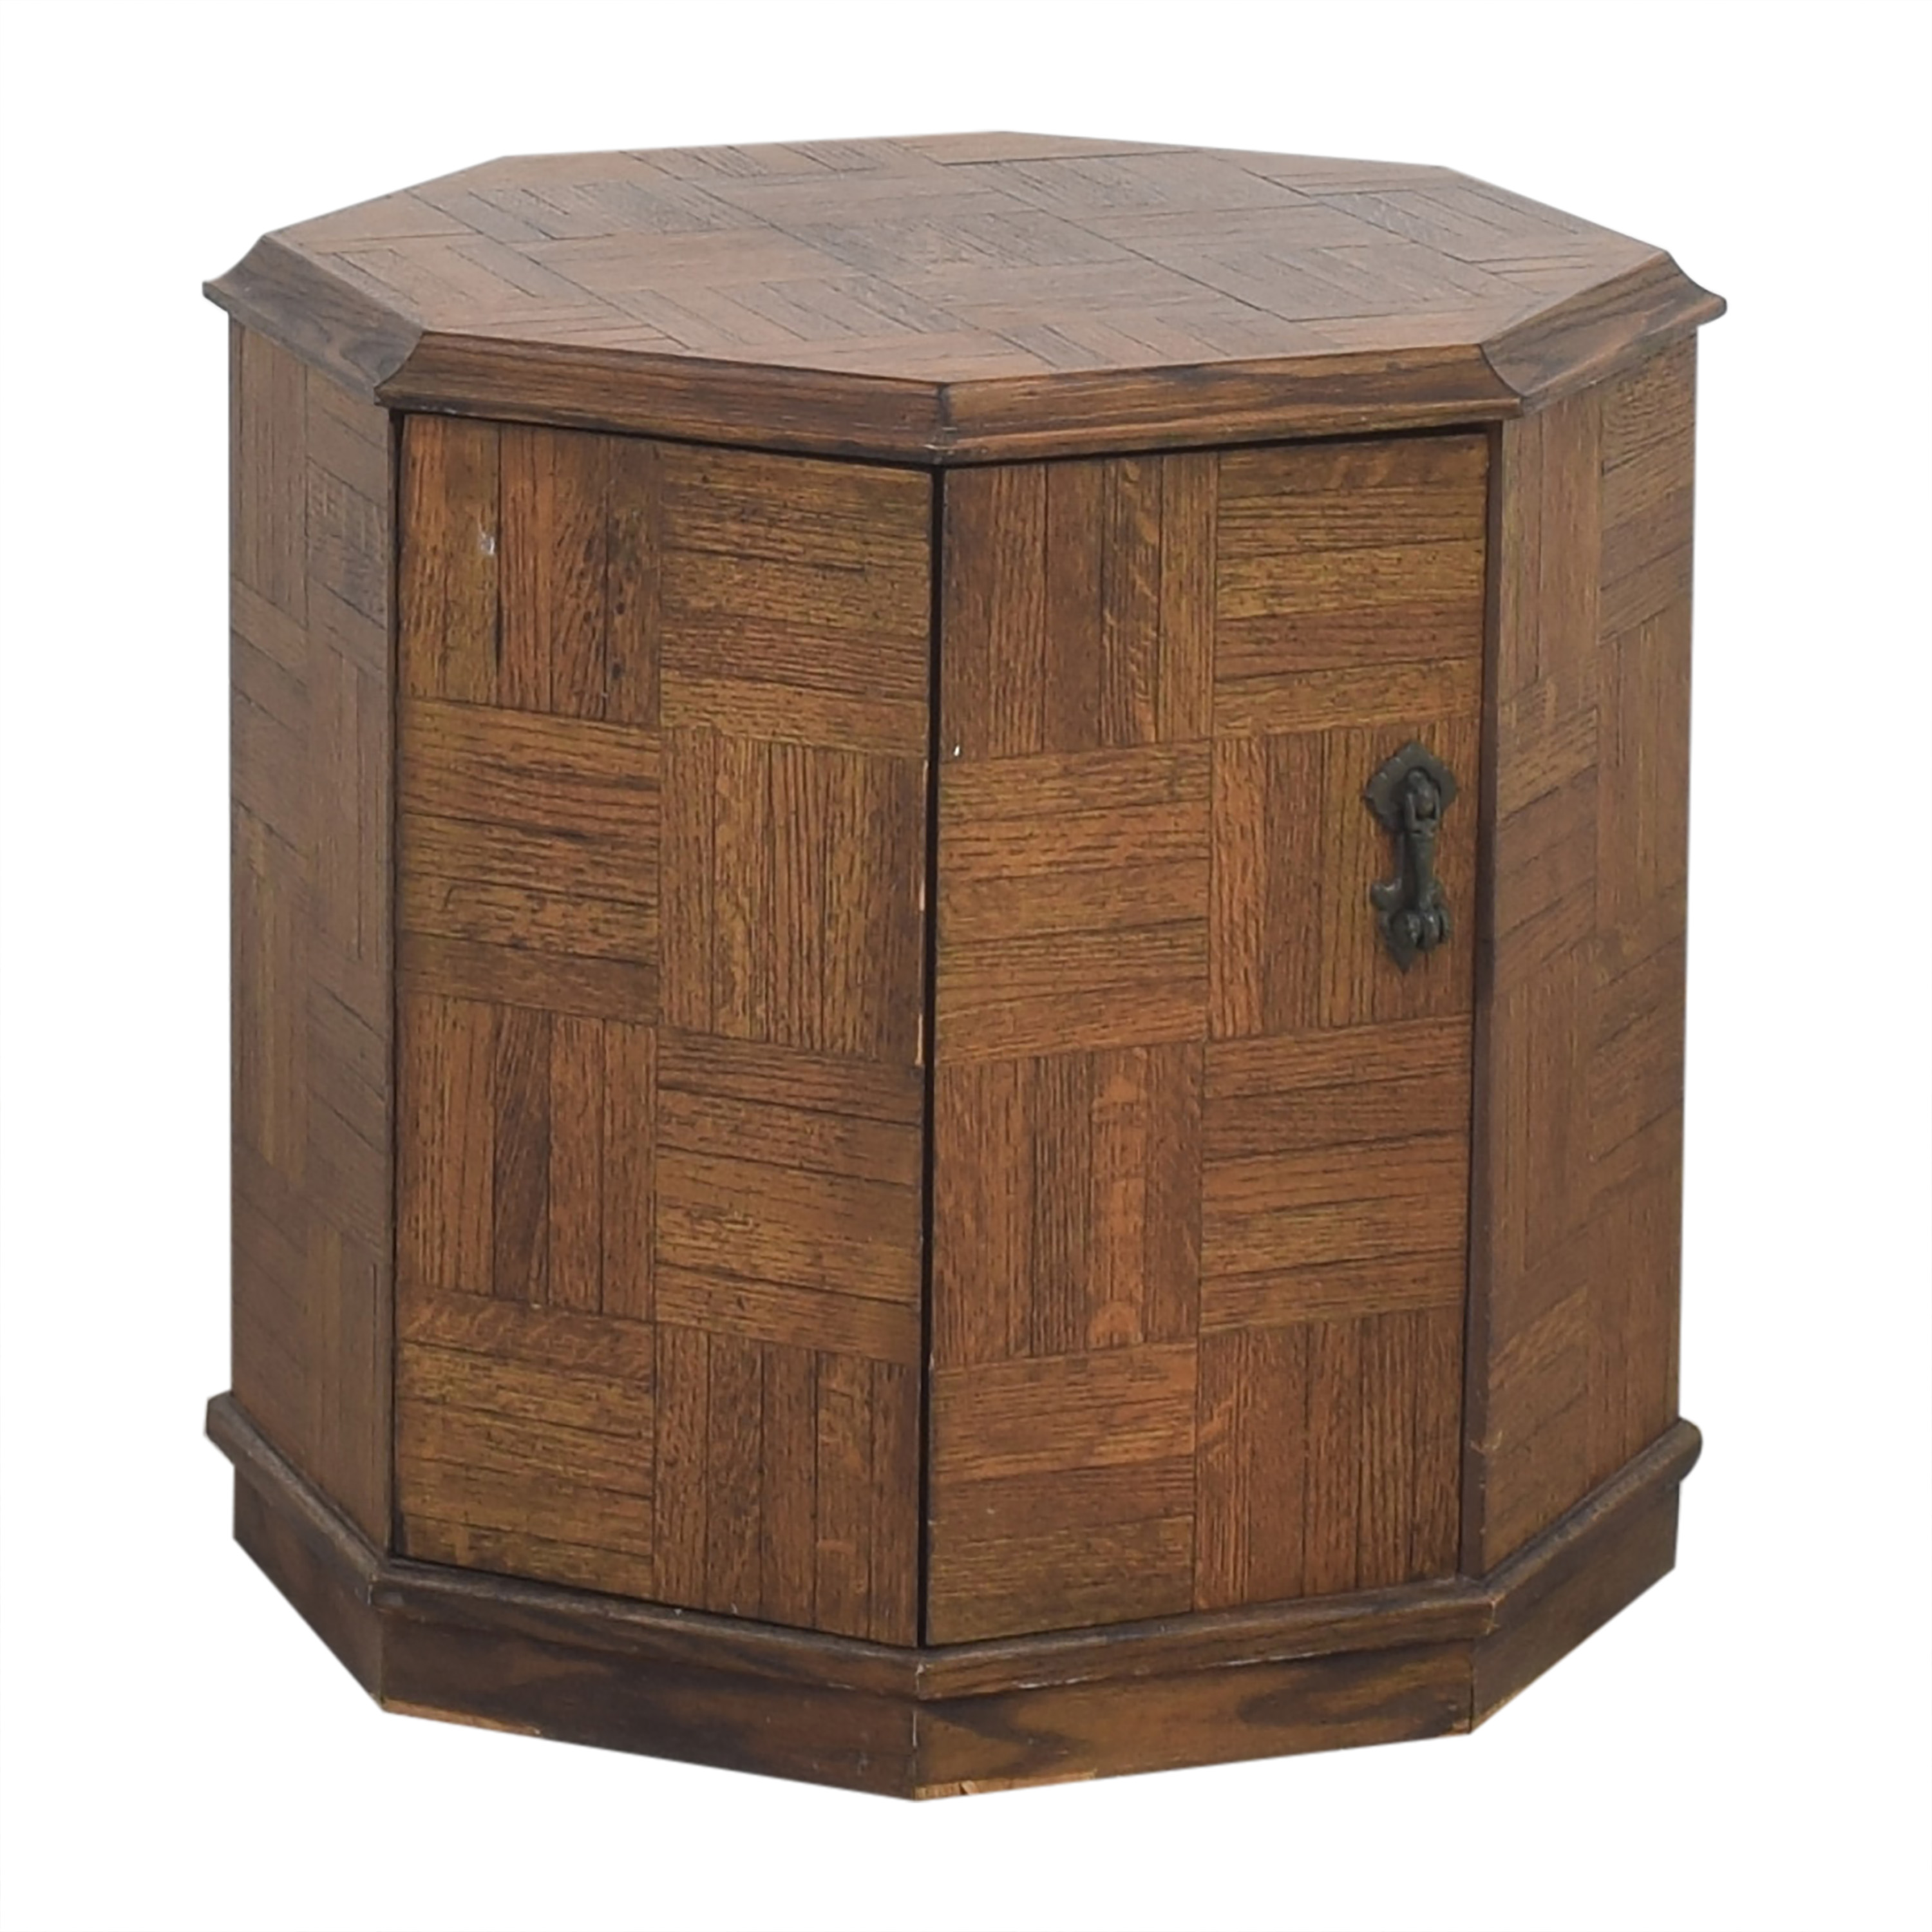 Octagonal Storage End Table / Tables